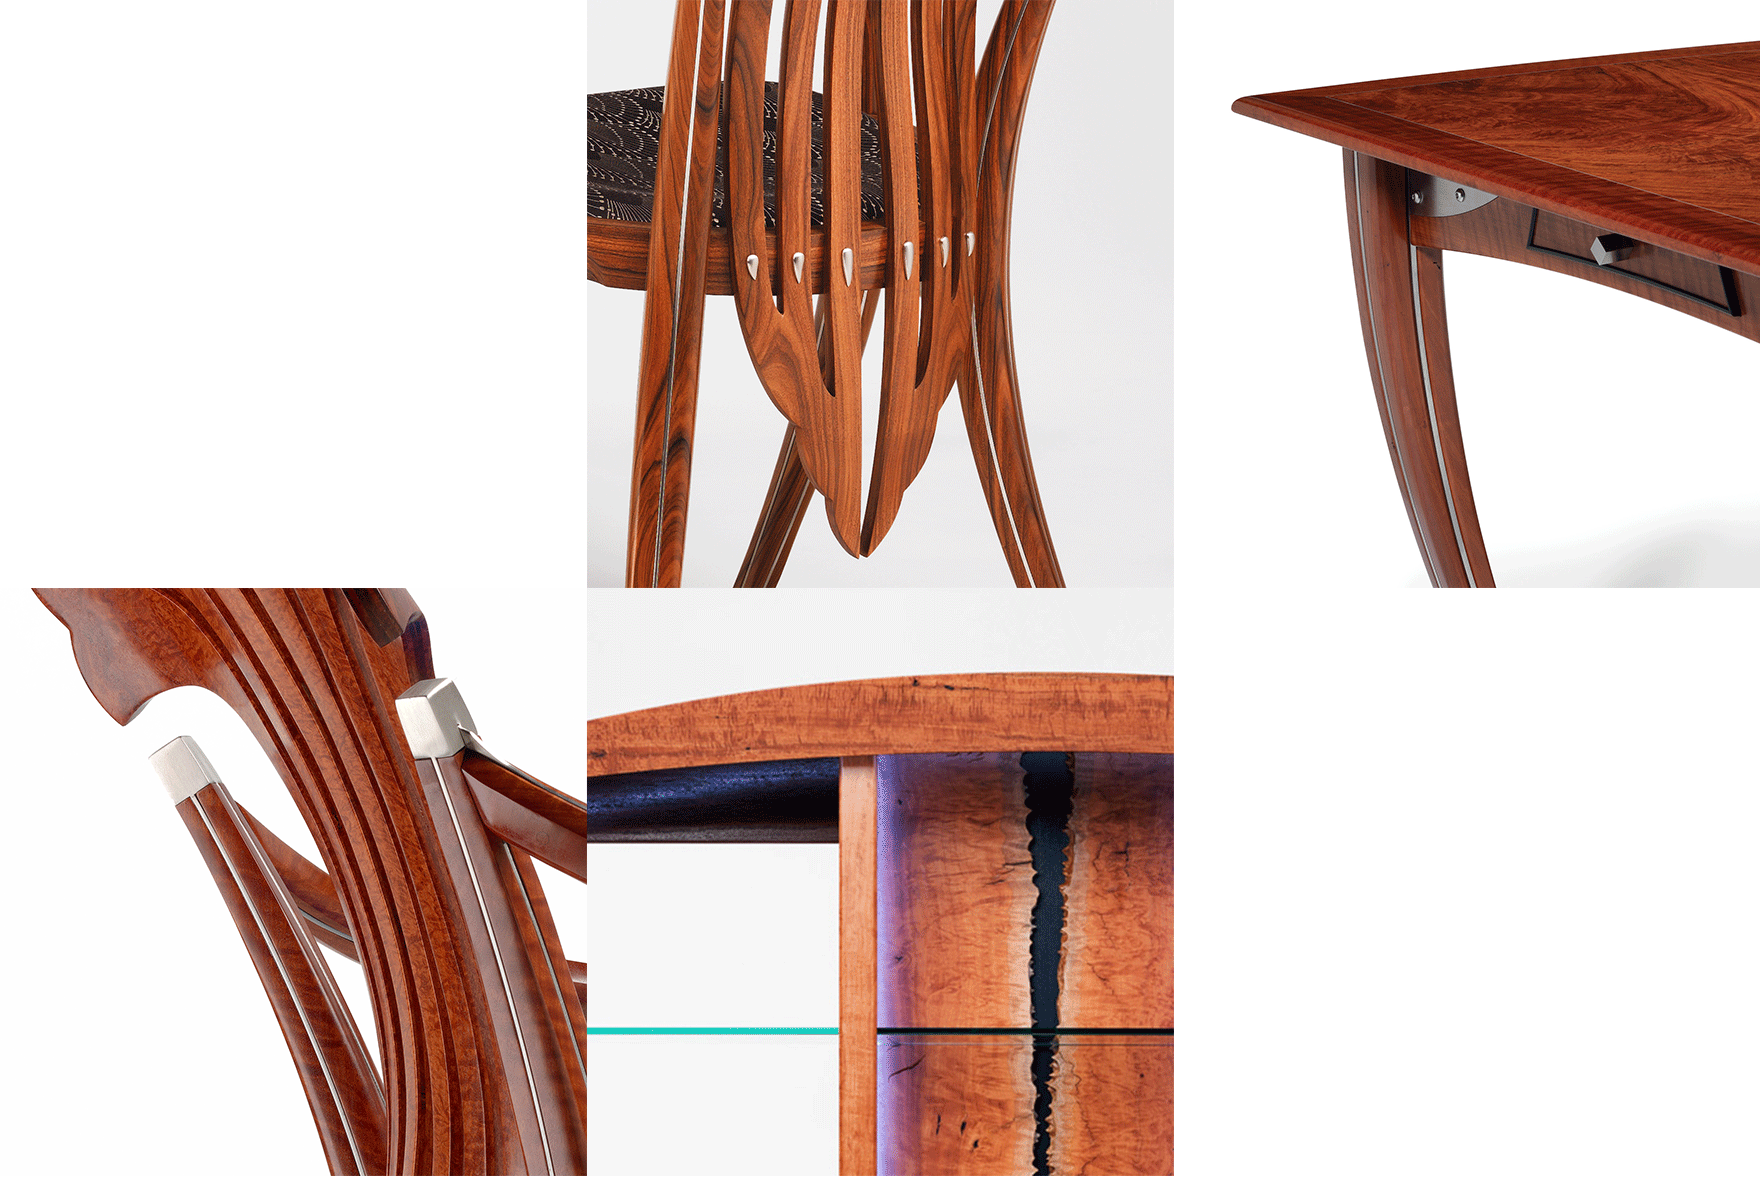 Furniture detail montage by designer maker Gray Hawk